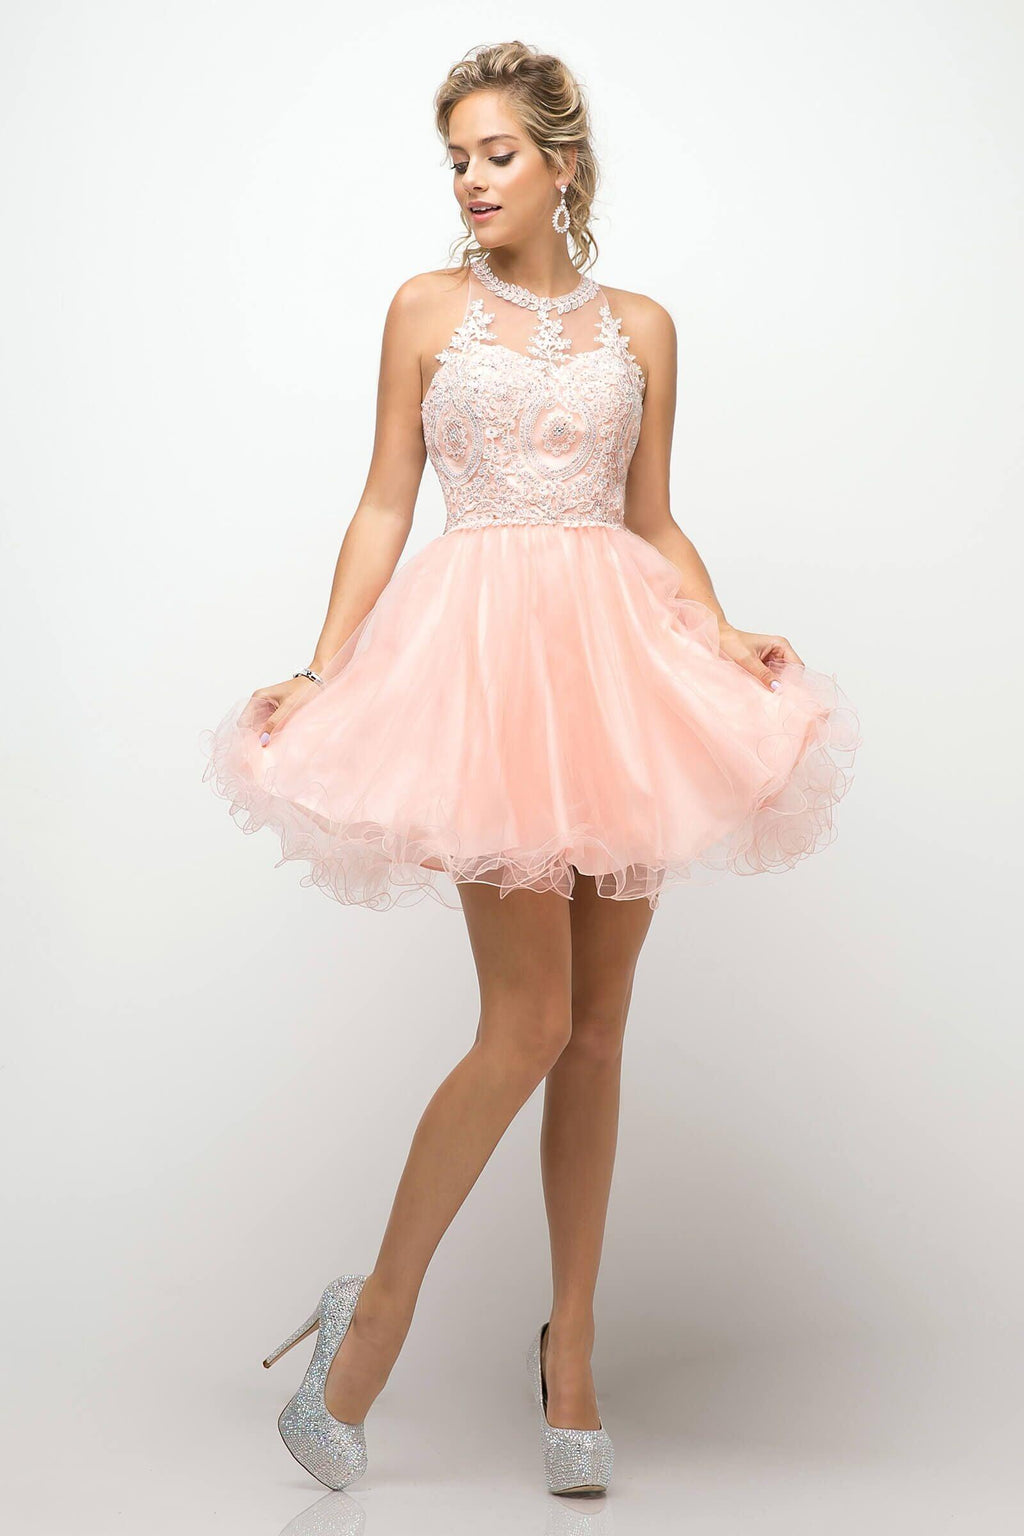 Short Prom Halter Neck Homecoming Dress - The Dress Outlet Blush May Queen